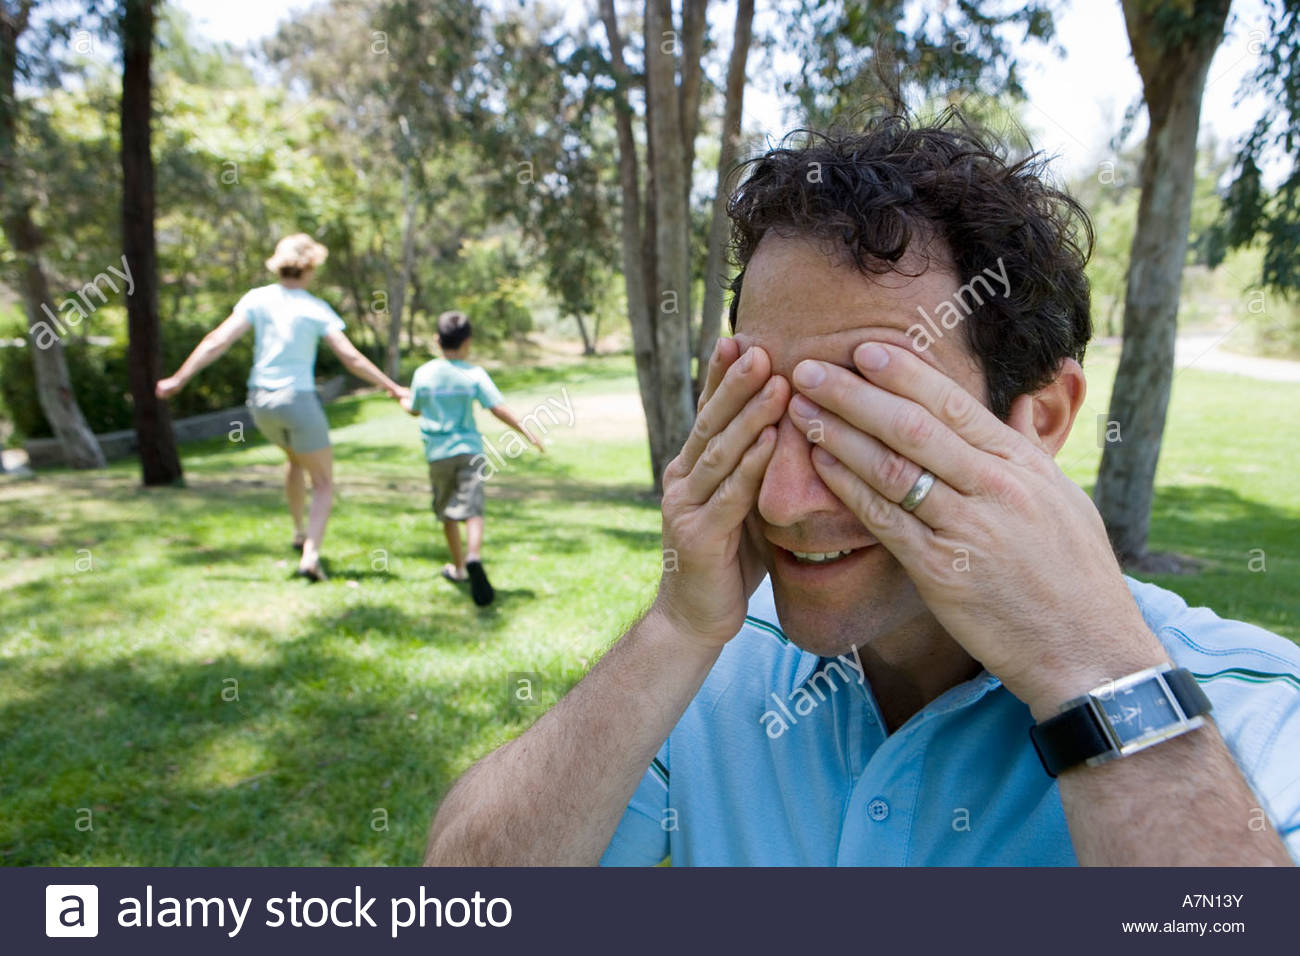 Family playing hide and seek in park boy 9 11 and mother running man covering eyes in foreground Stock Photo